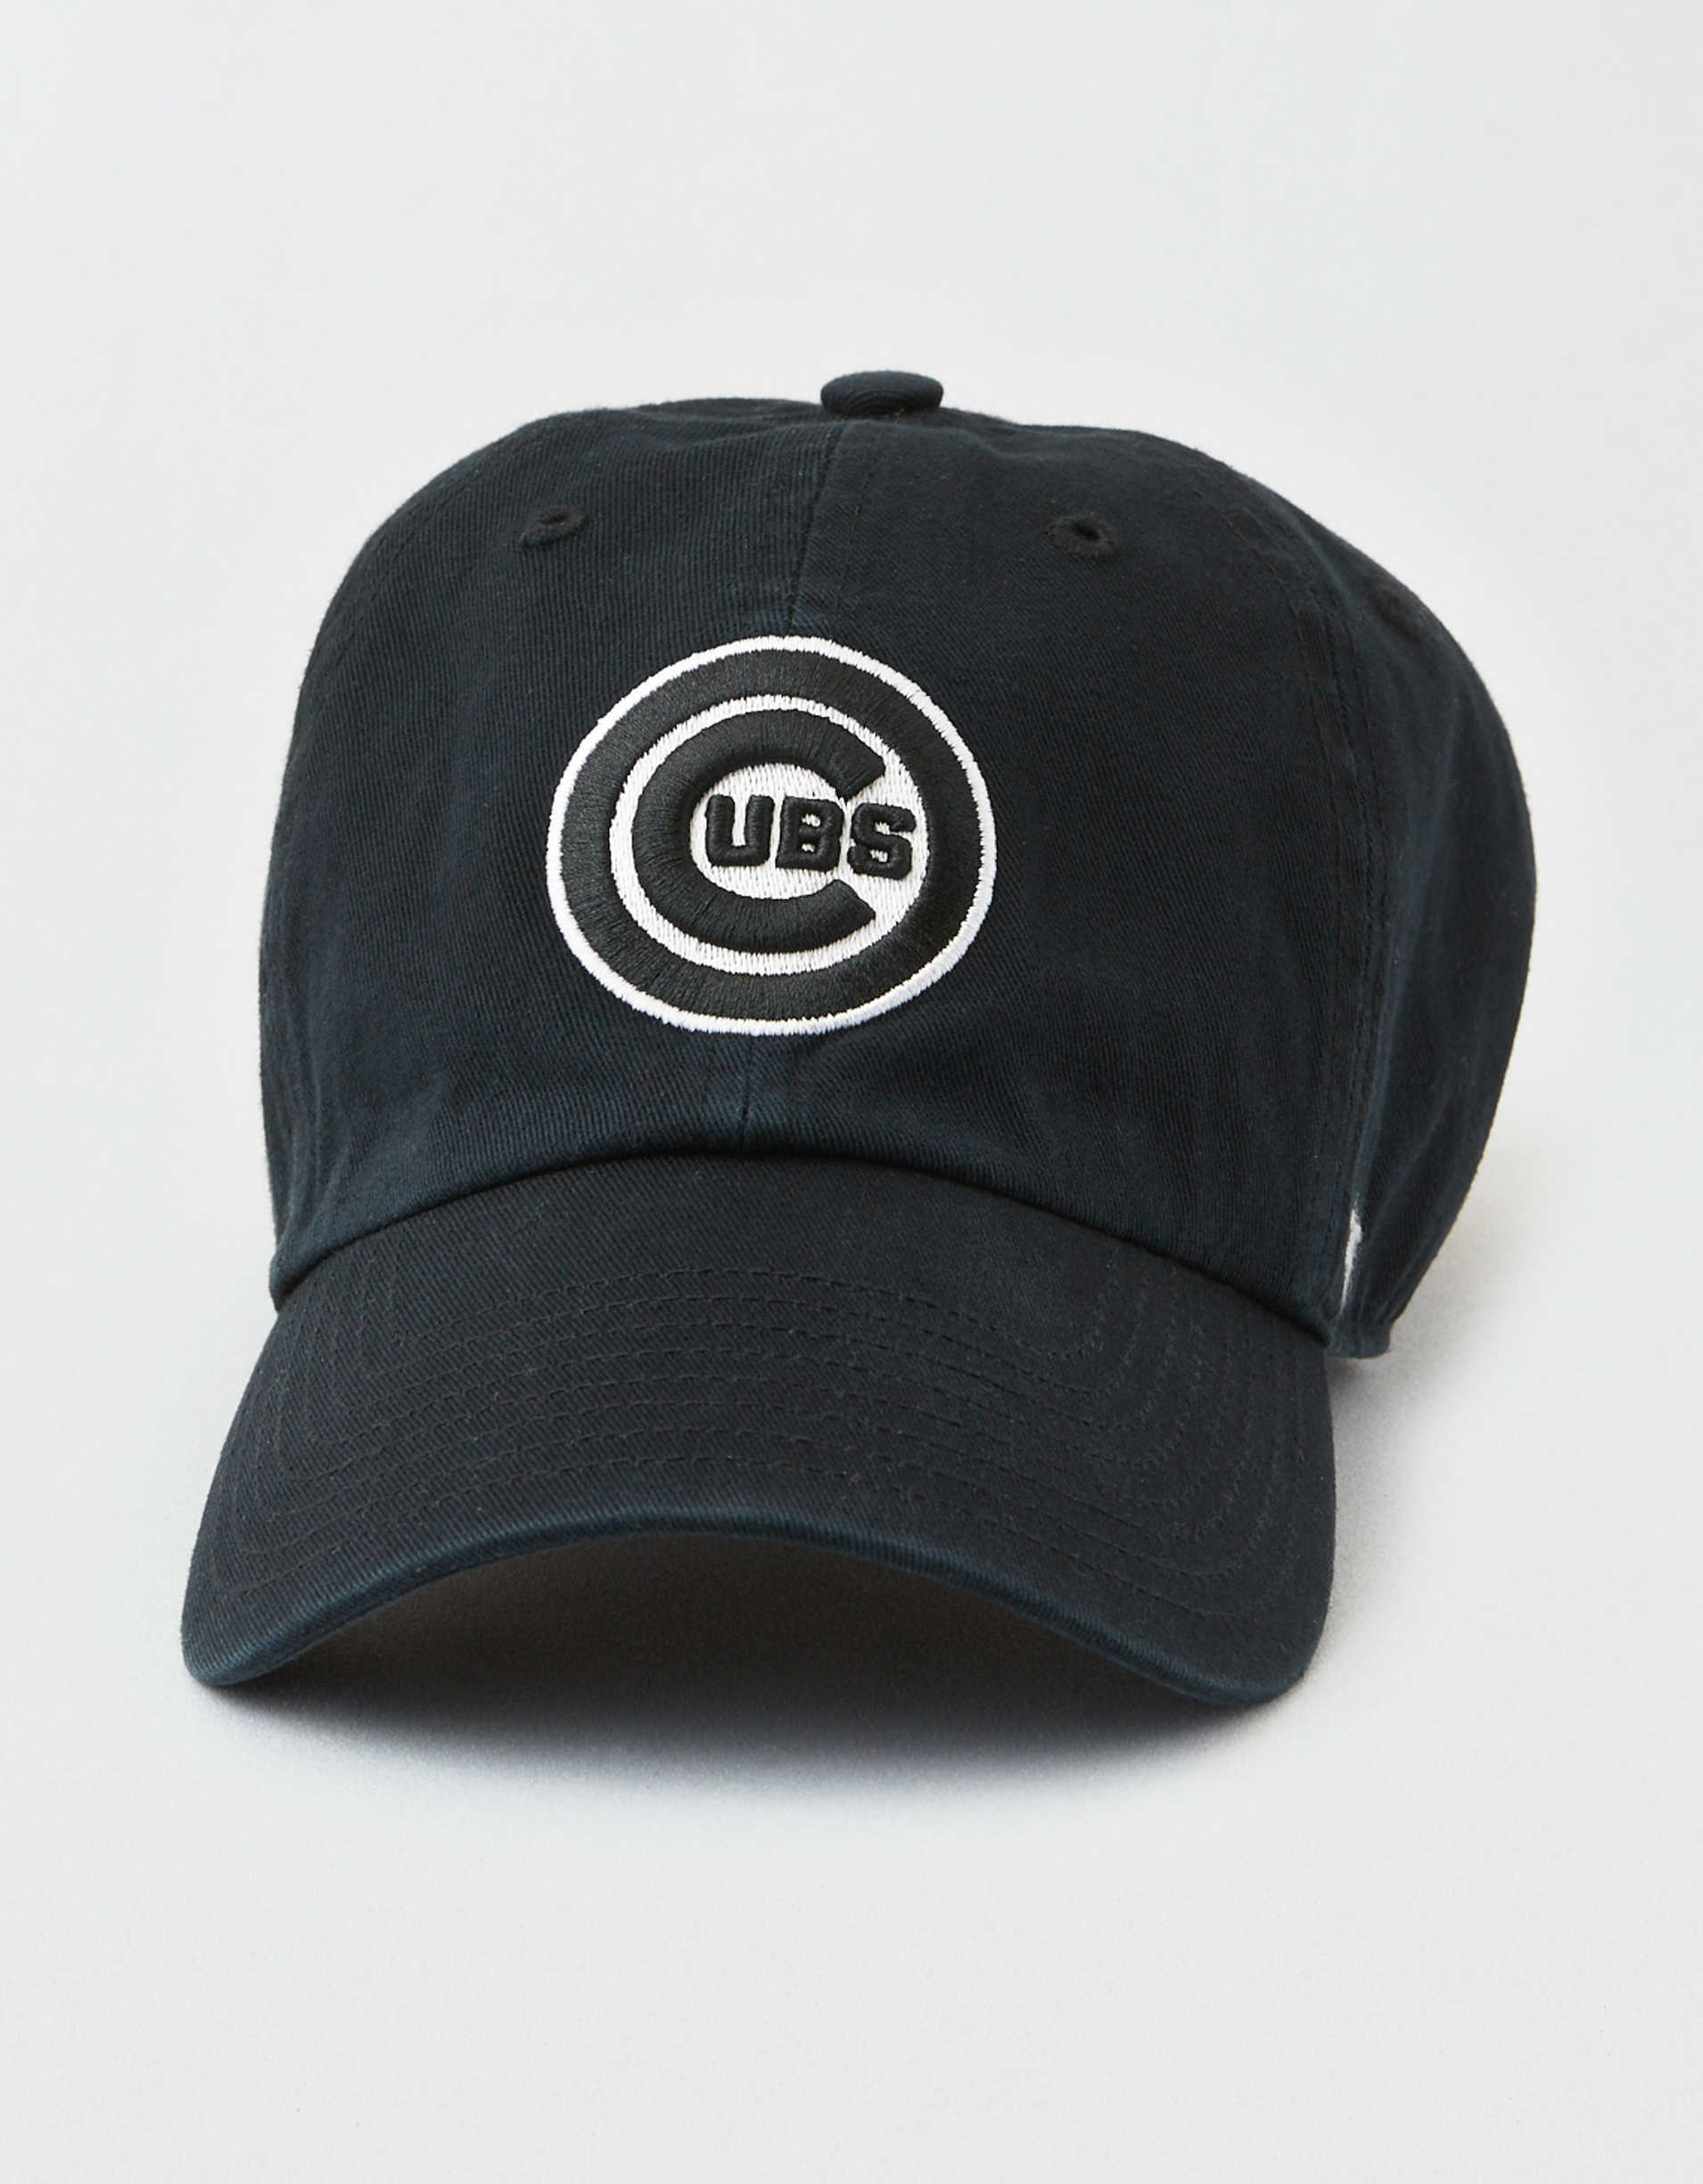 '47 Brand Chicago Cubs Baseball Hat